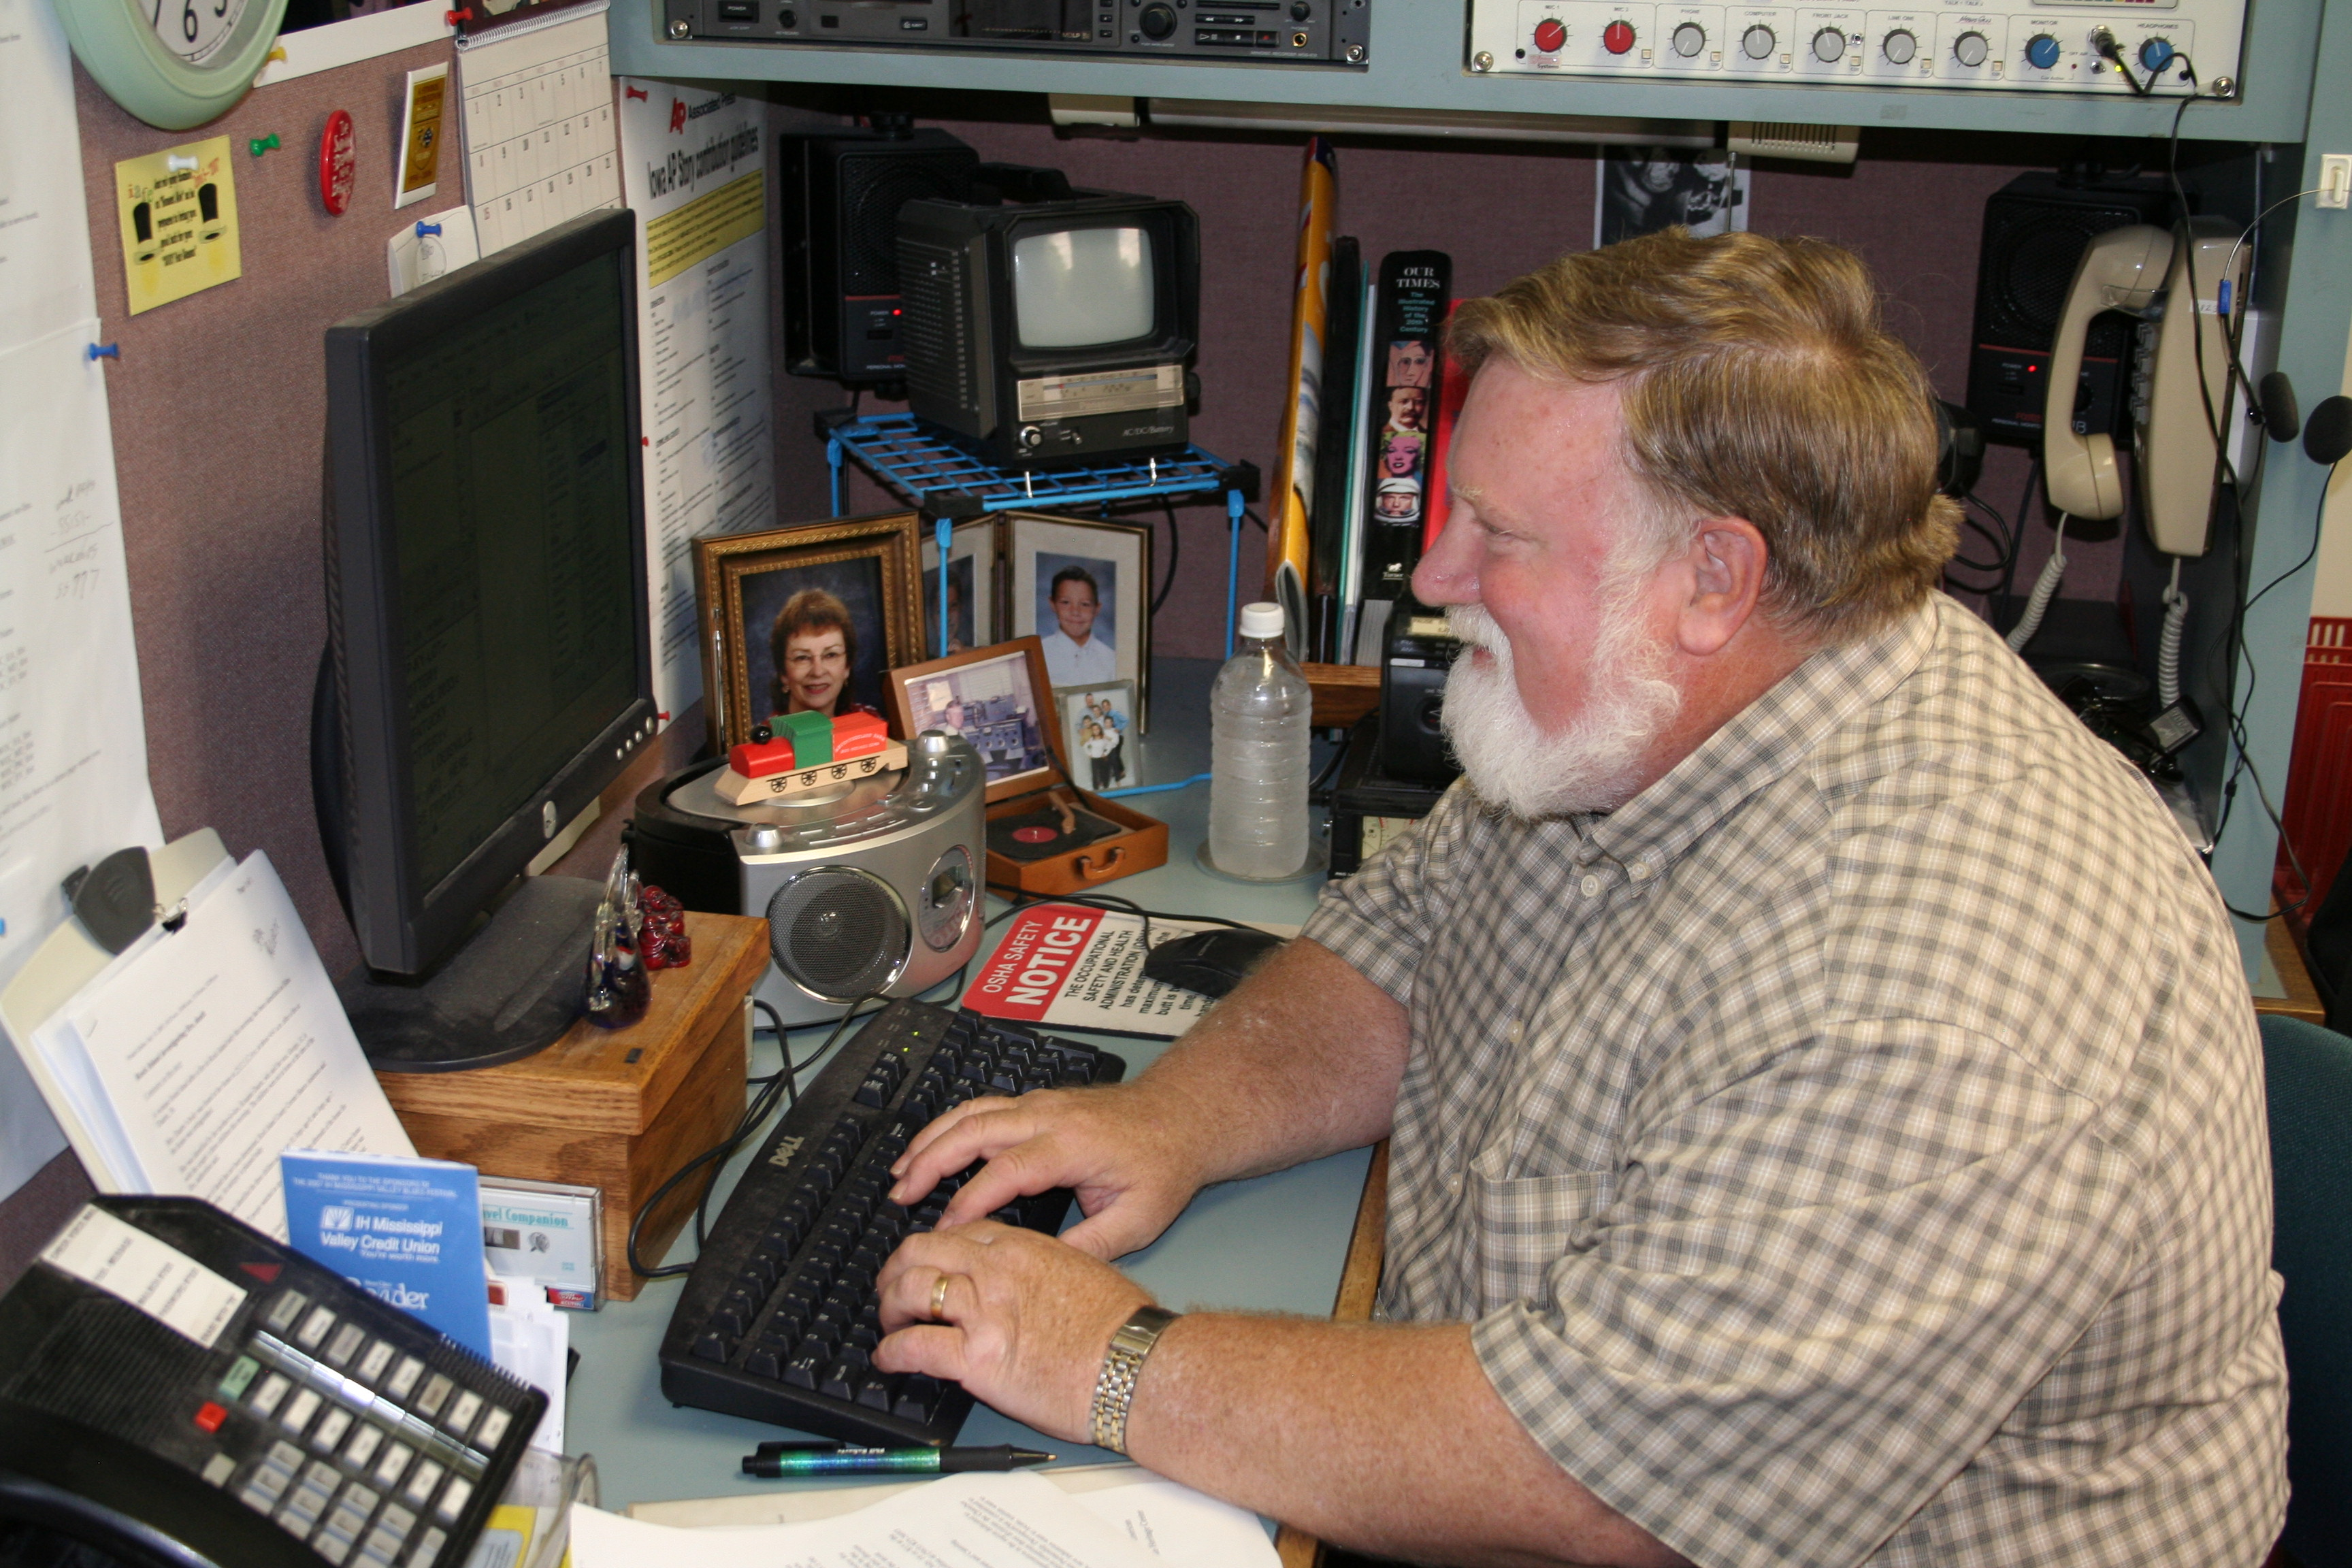 I spend much of each day at the computer writing, as this July 2007 photo indicates.